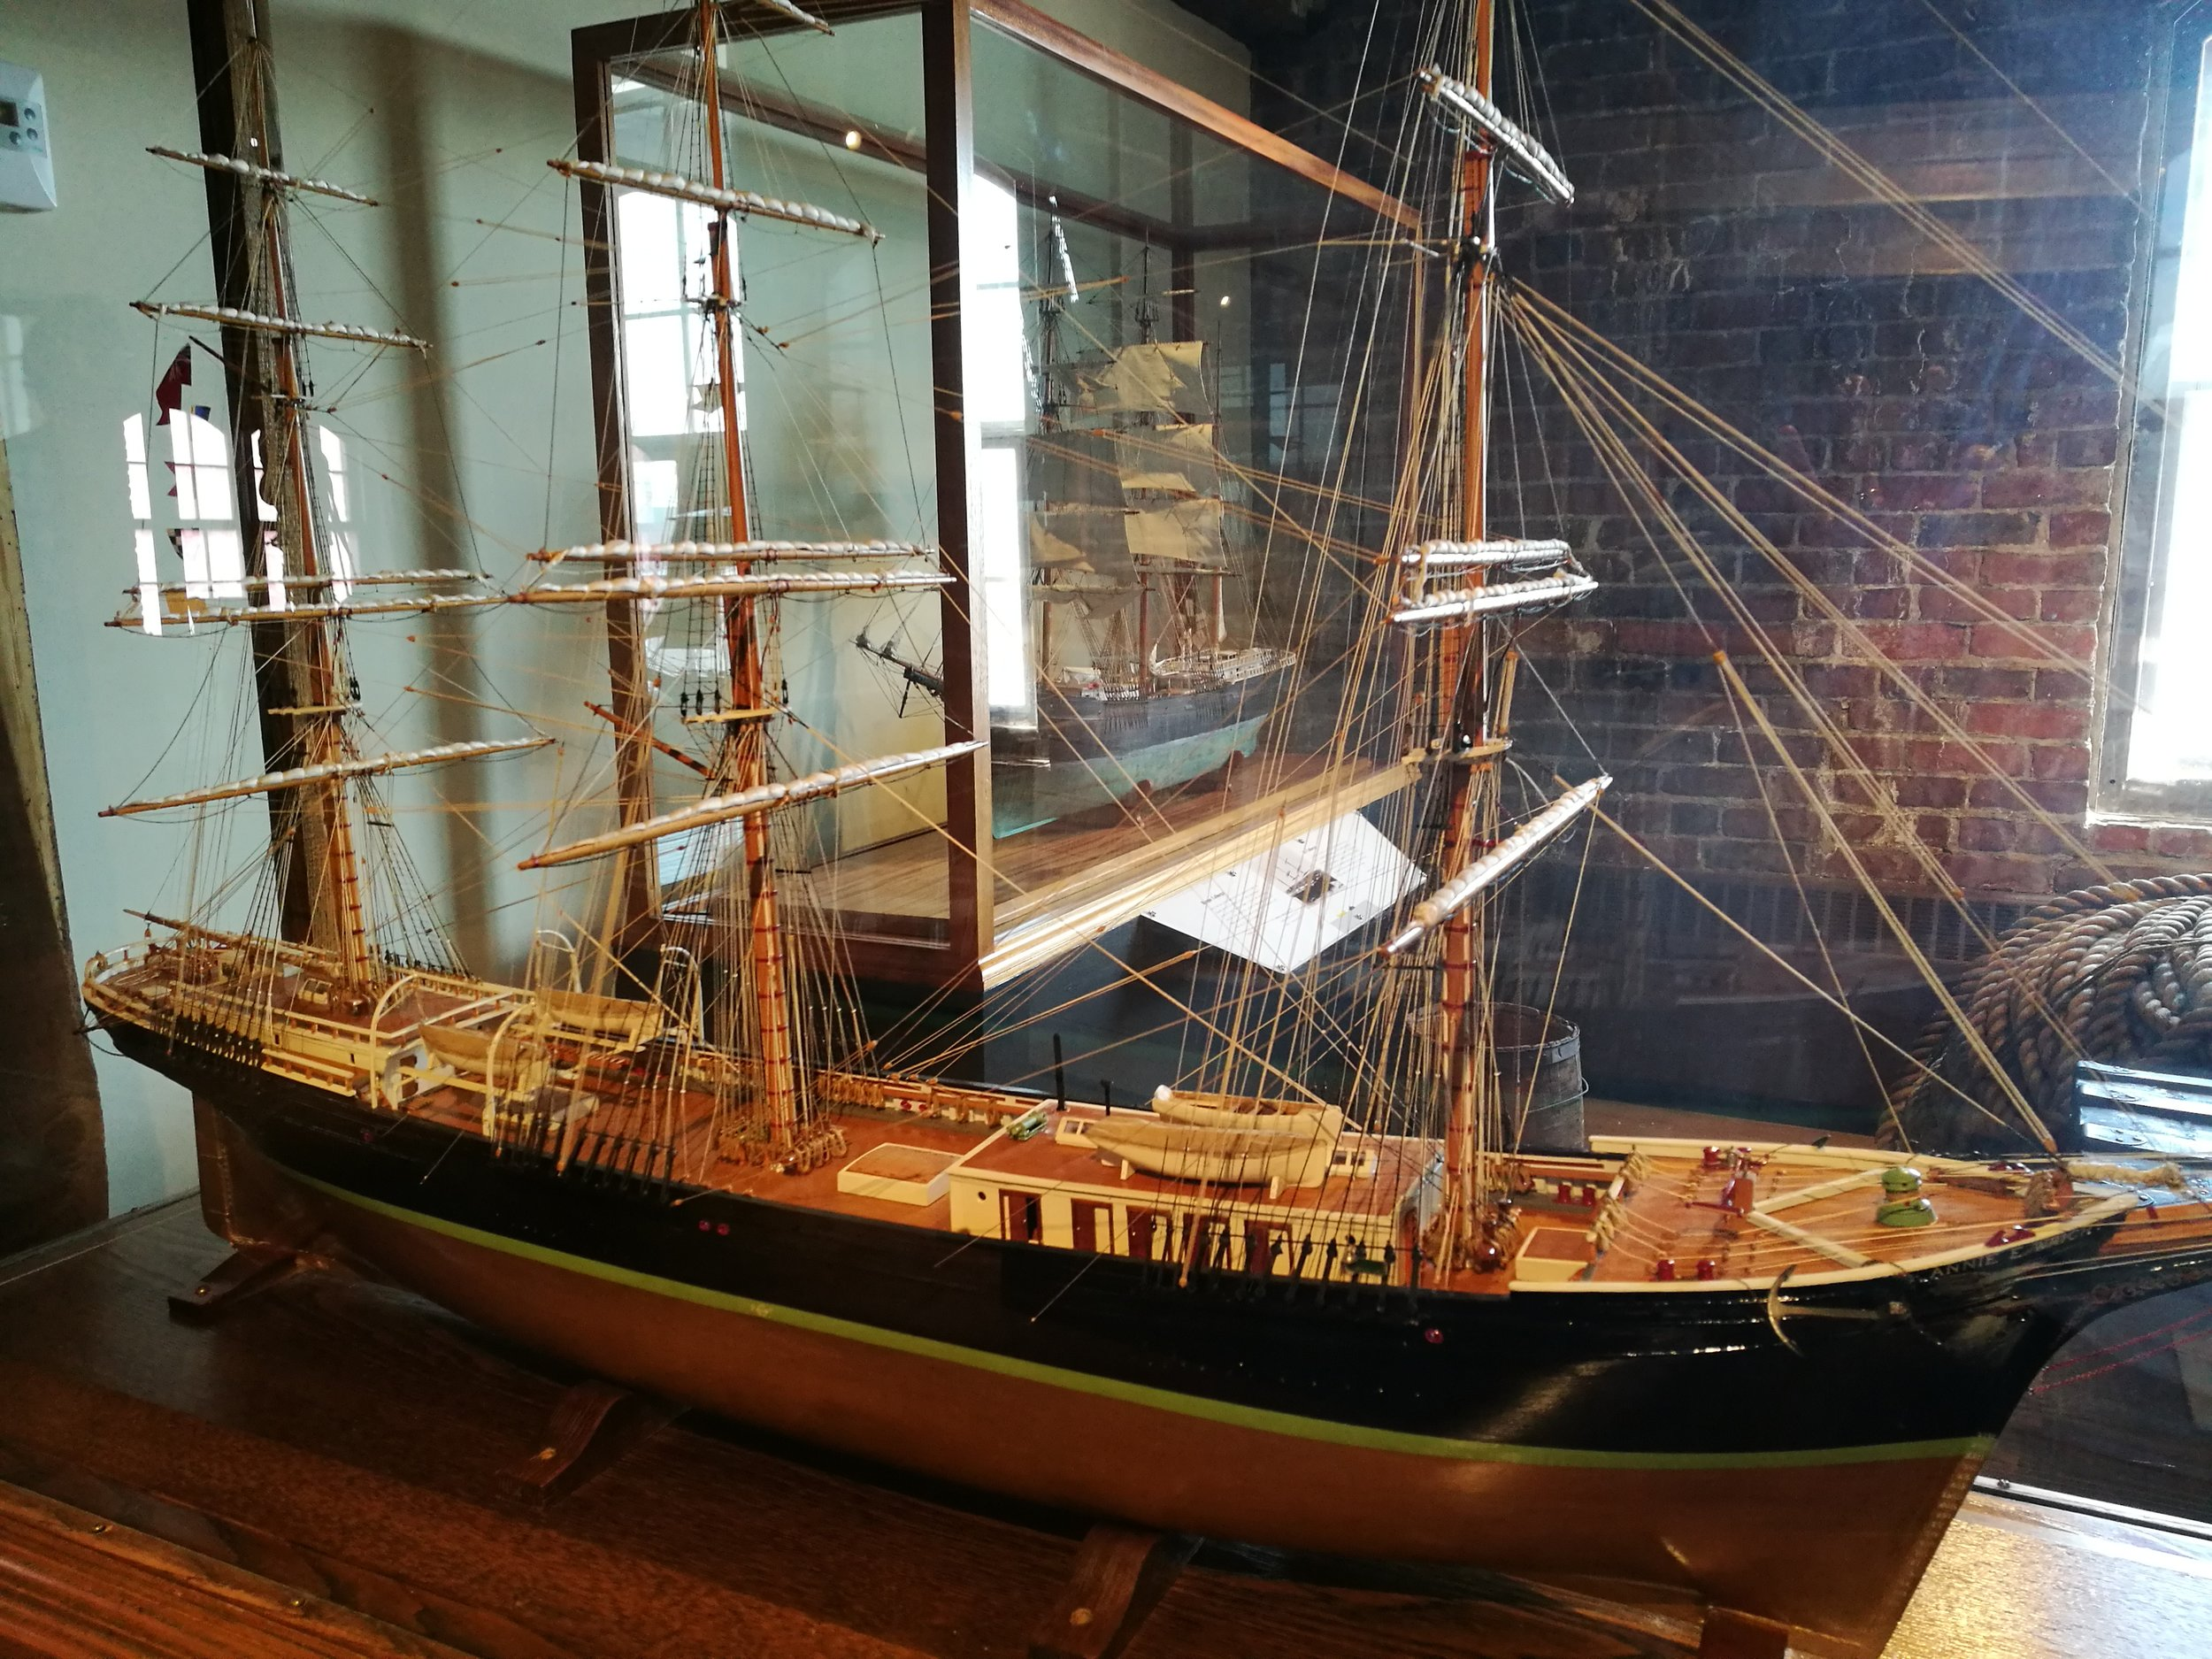 Maritime Museum of the Atlantic, Halifax